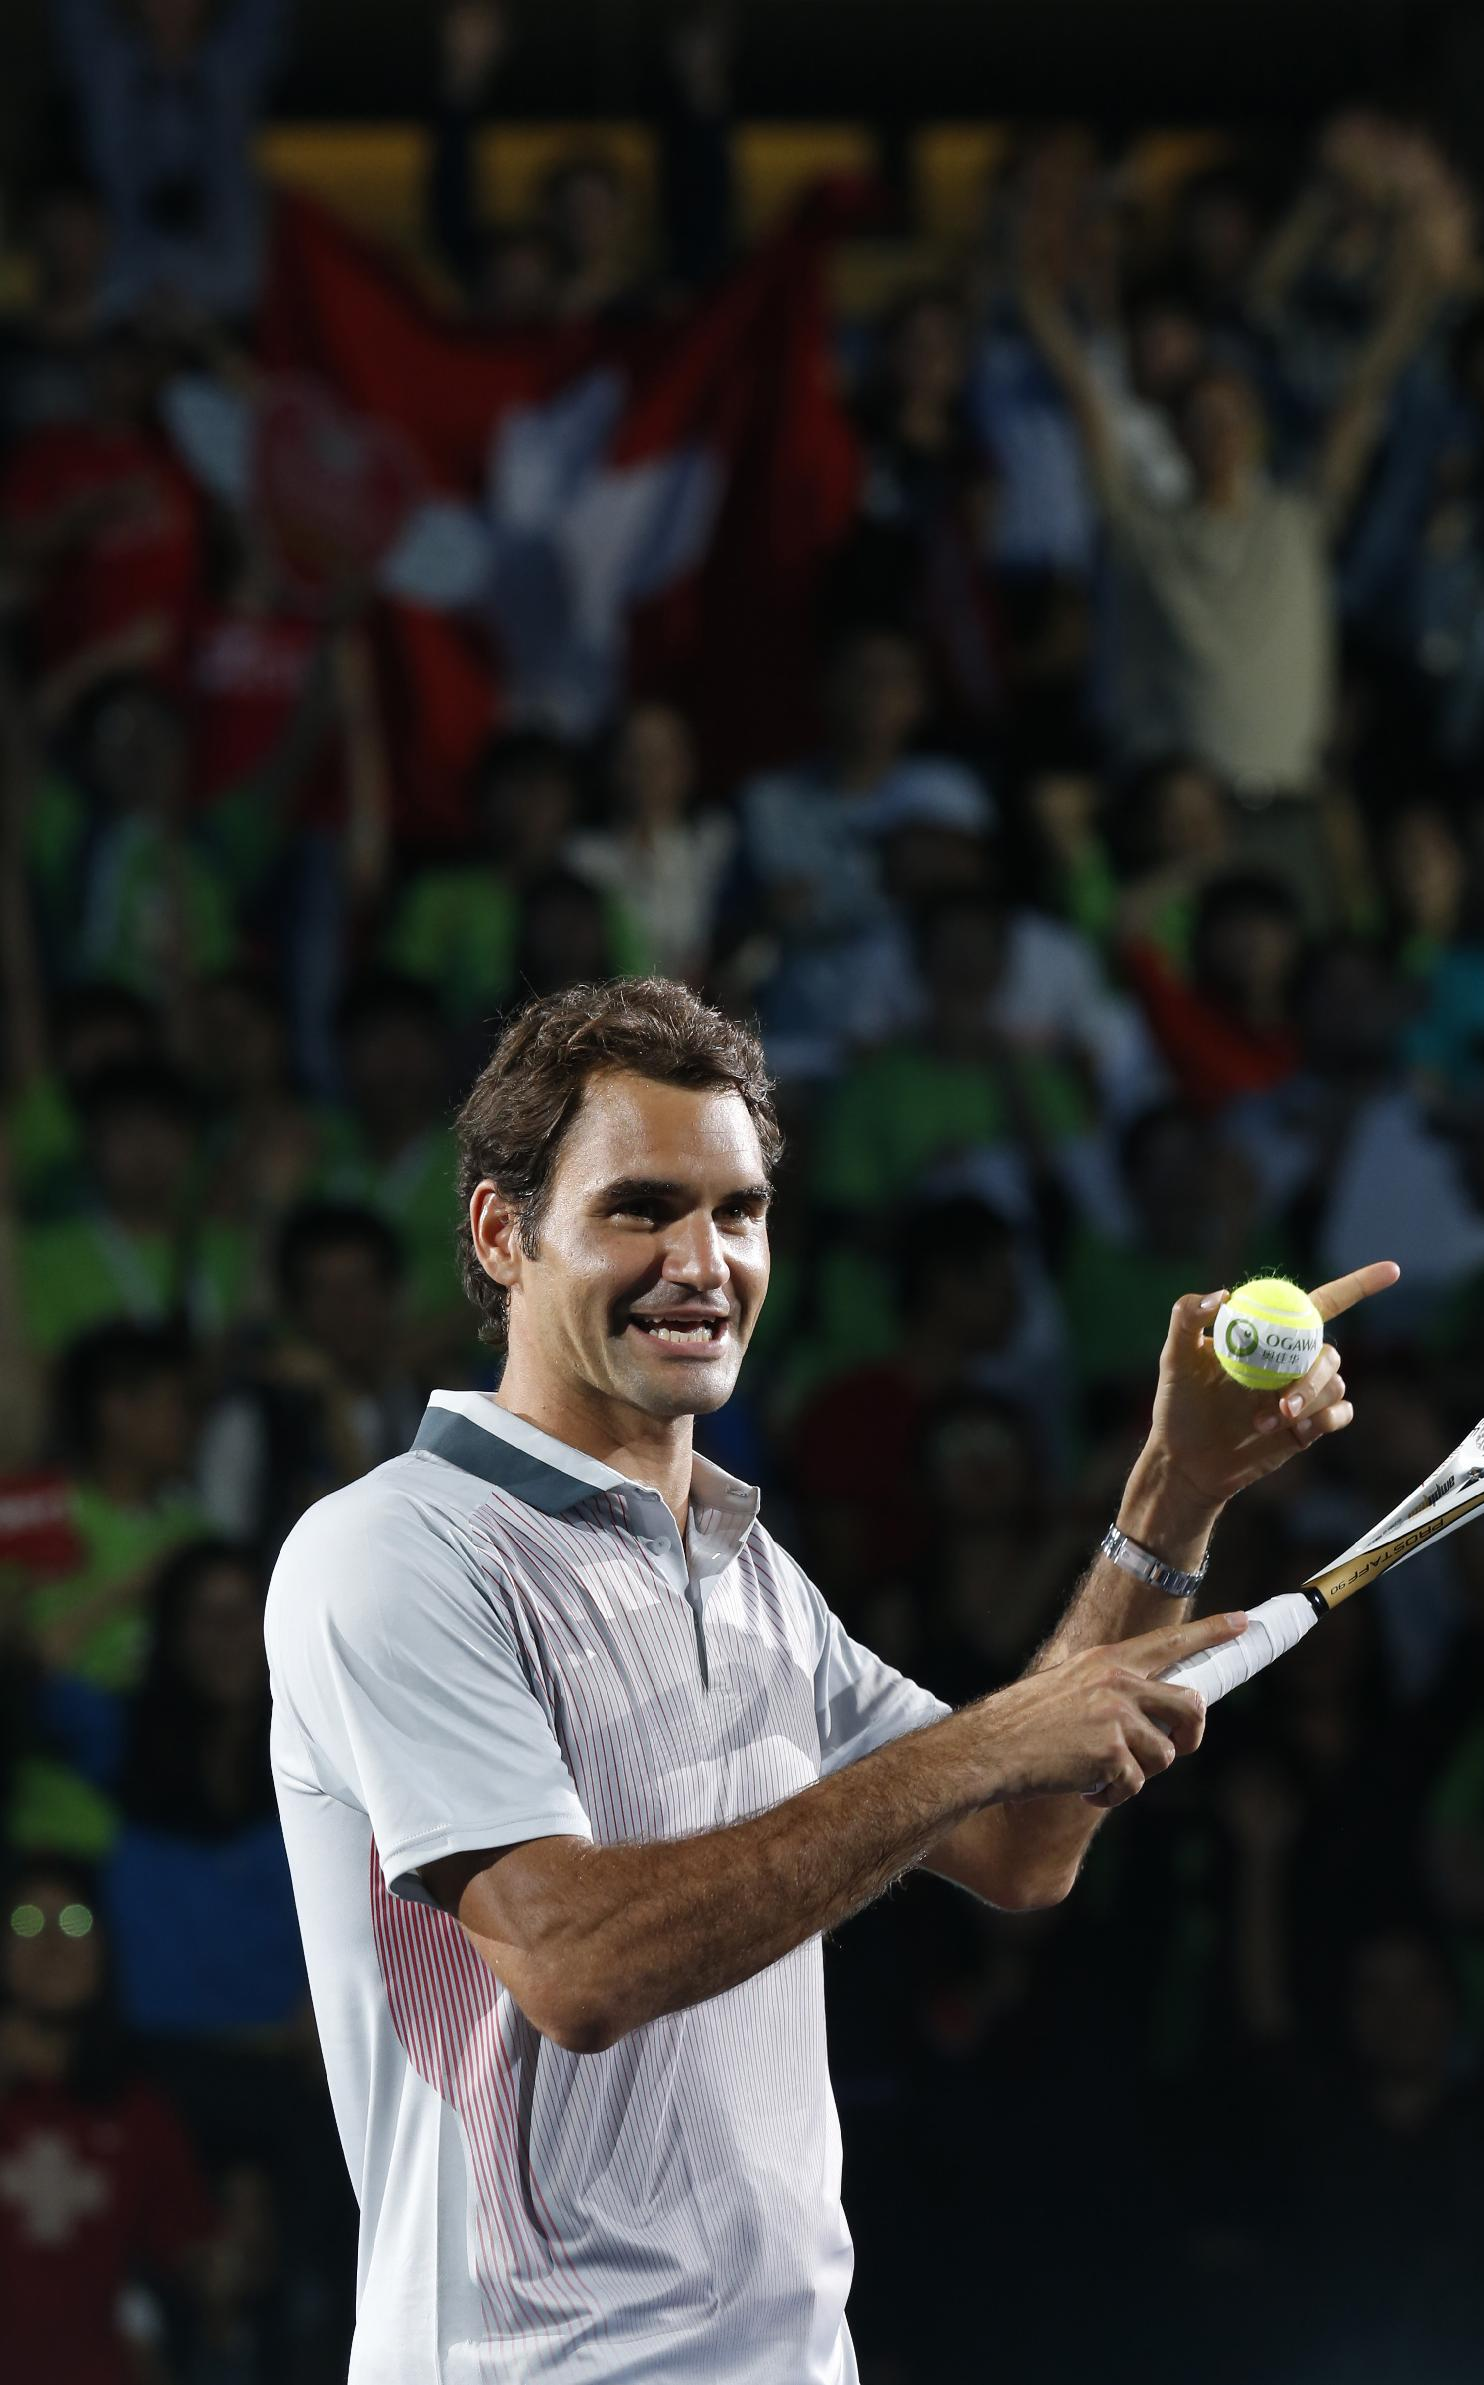 Roger Federer of Switzerland gestures during a fan meeting event ahead of the Shanghai Masters at Qizhon Tennis Center in Shanghai, China, Saturday, Oct. 5, 2013